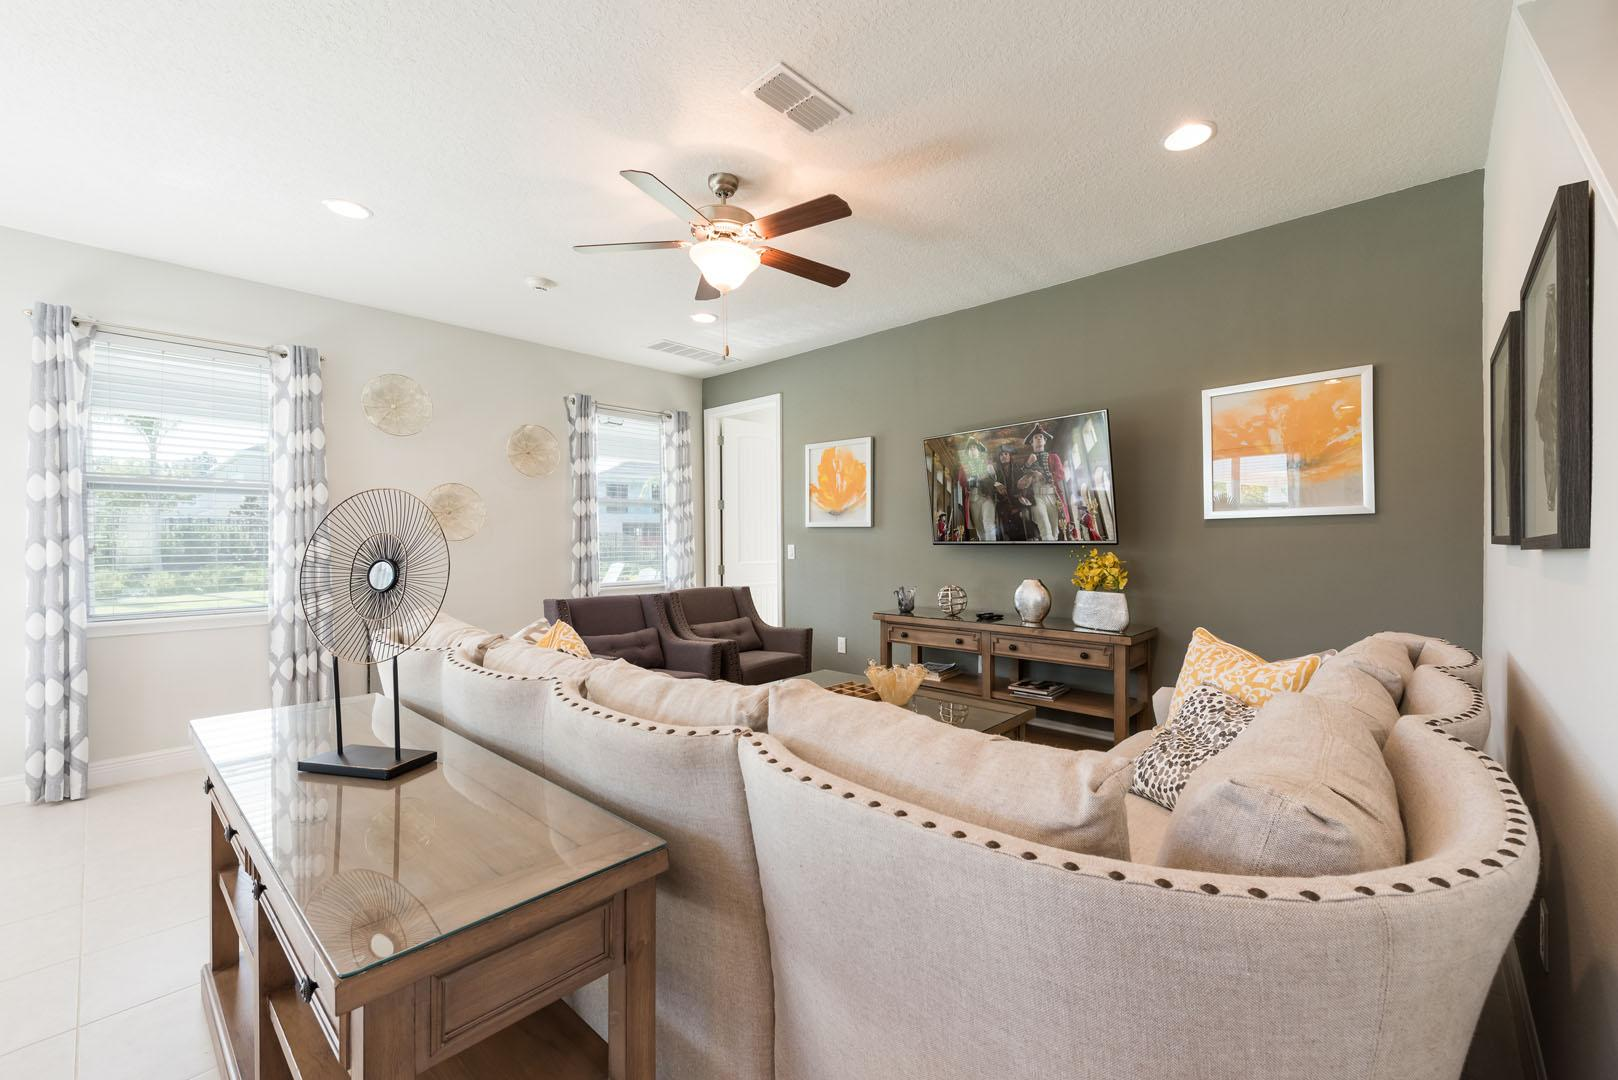 Property Image 2 - Charming Home near Disney with Hockey Table